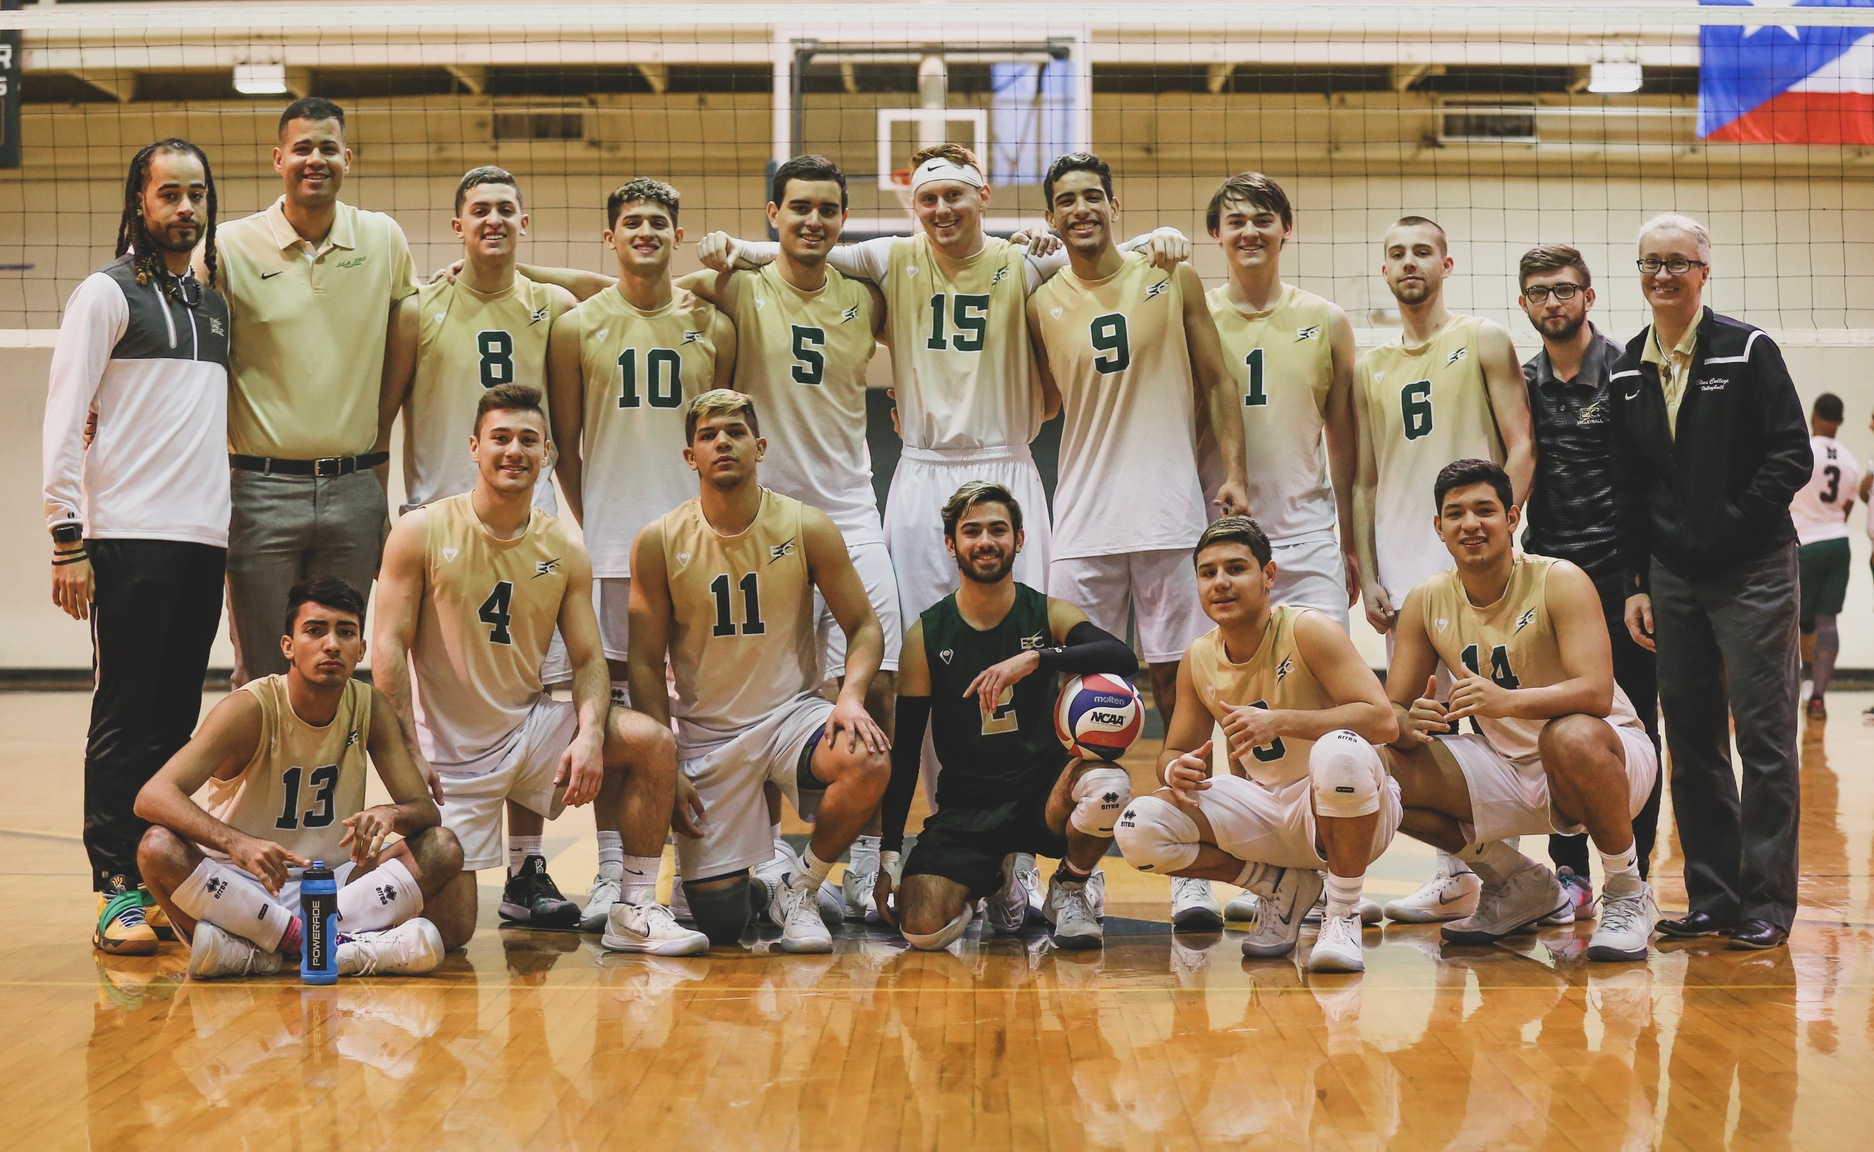 Men's Volleyball Reaches Highest National Ranking In Program History